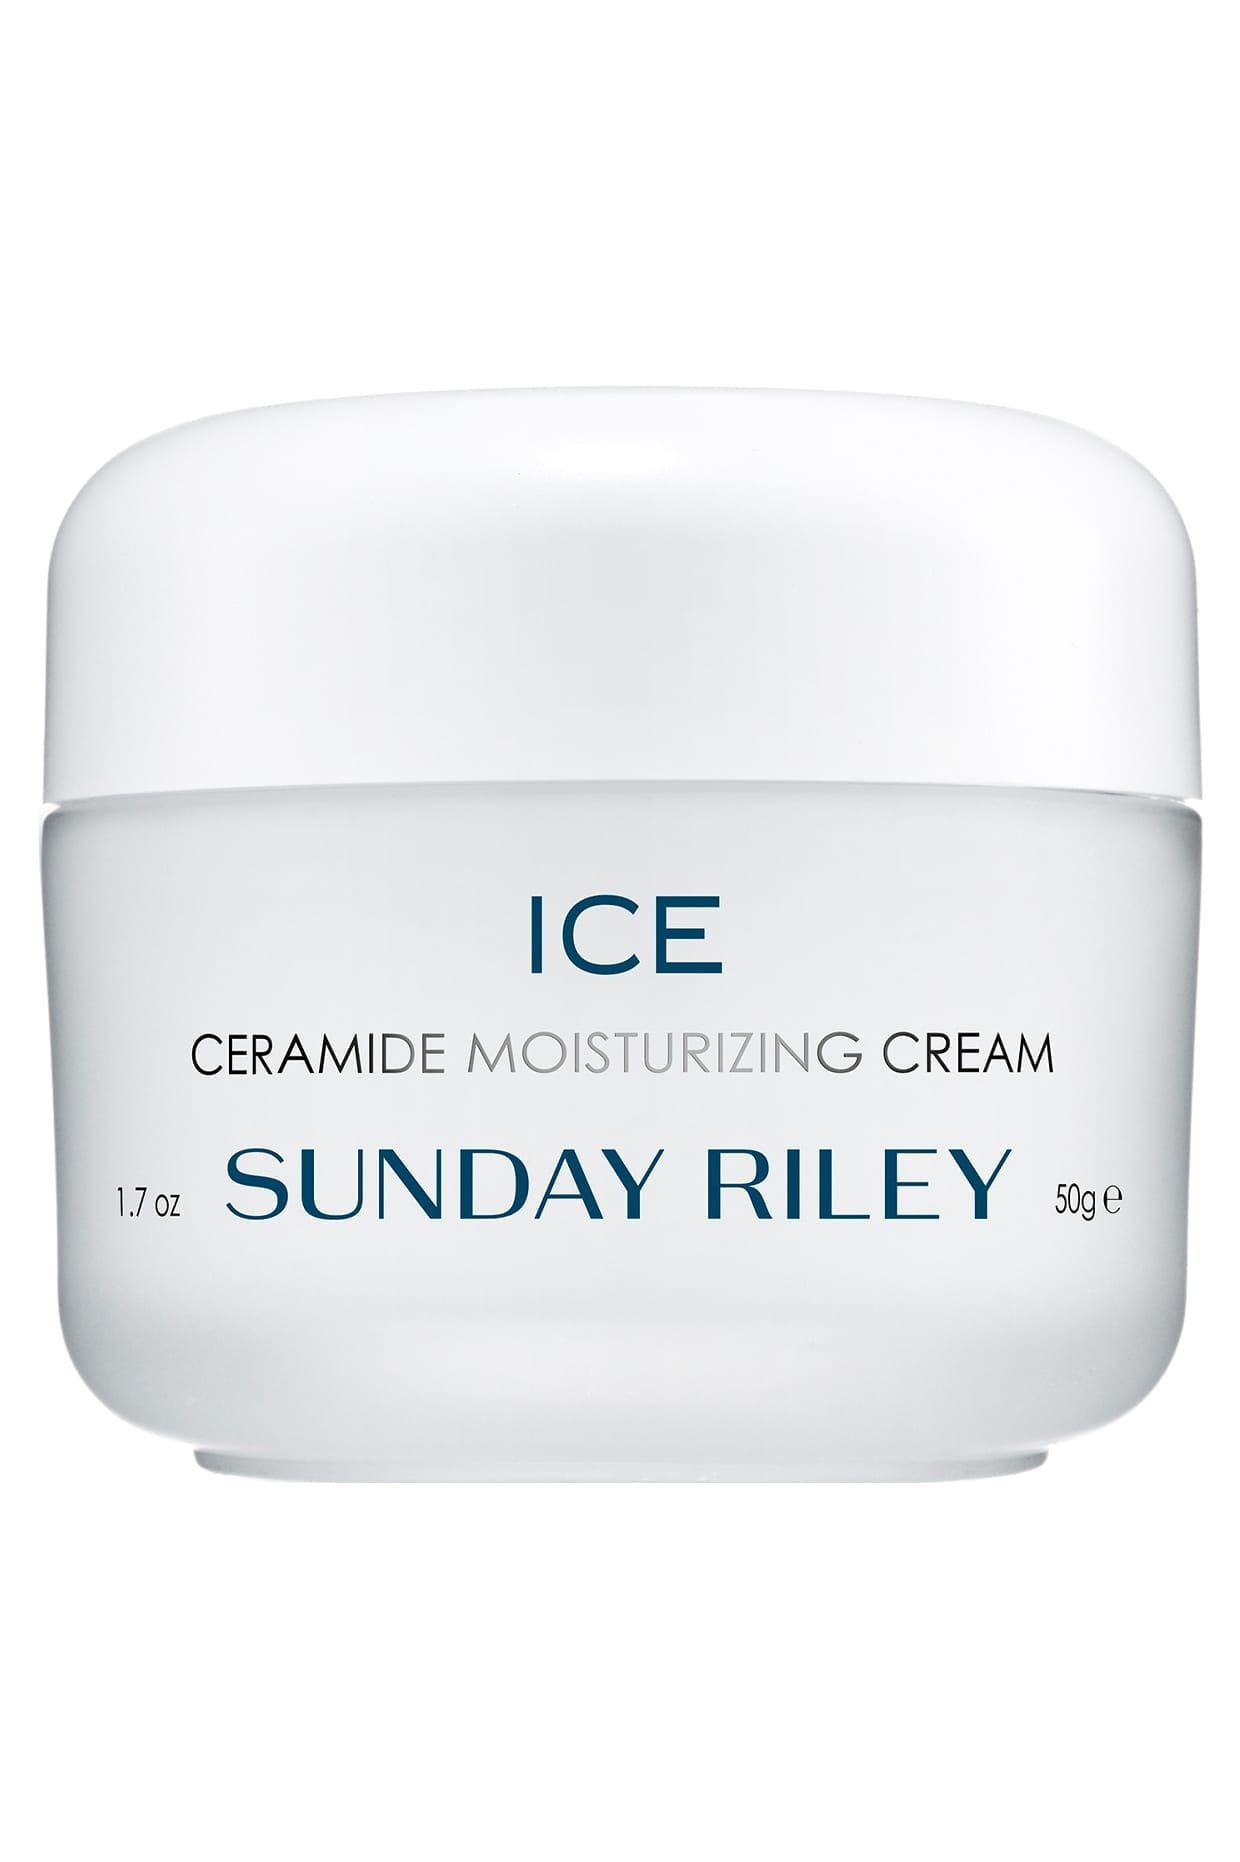 ice ceramide moisturizing cream, all white packaging with blue and silver writing on the tub